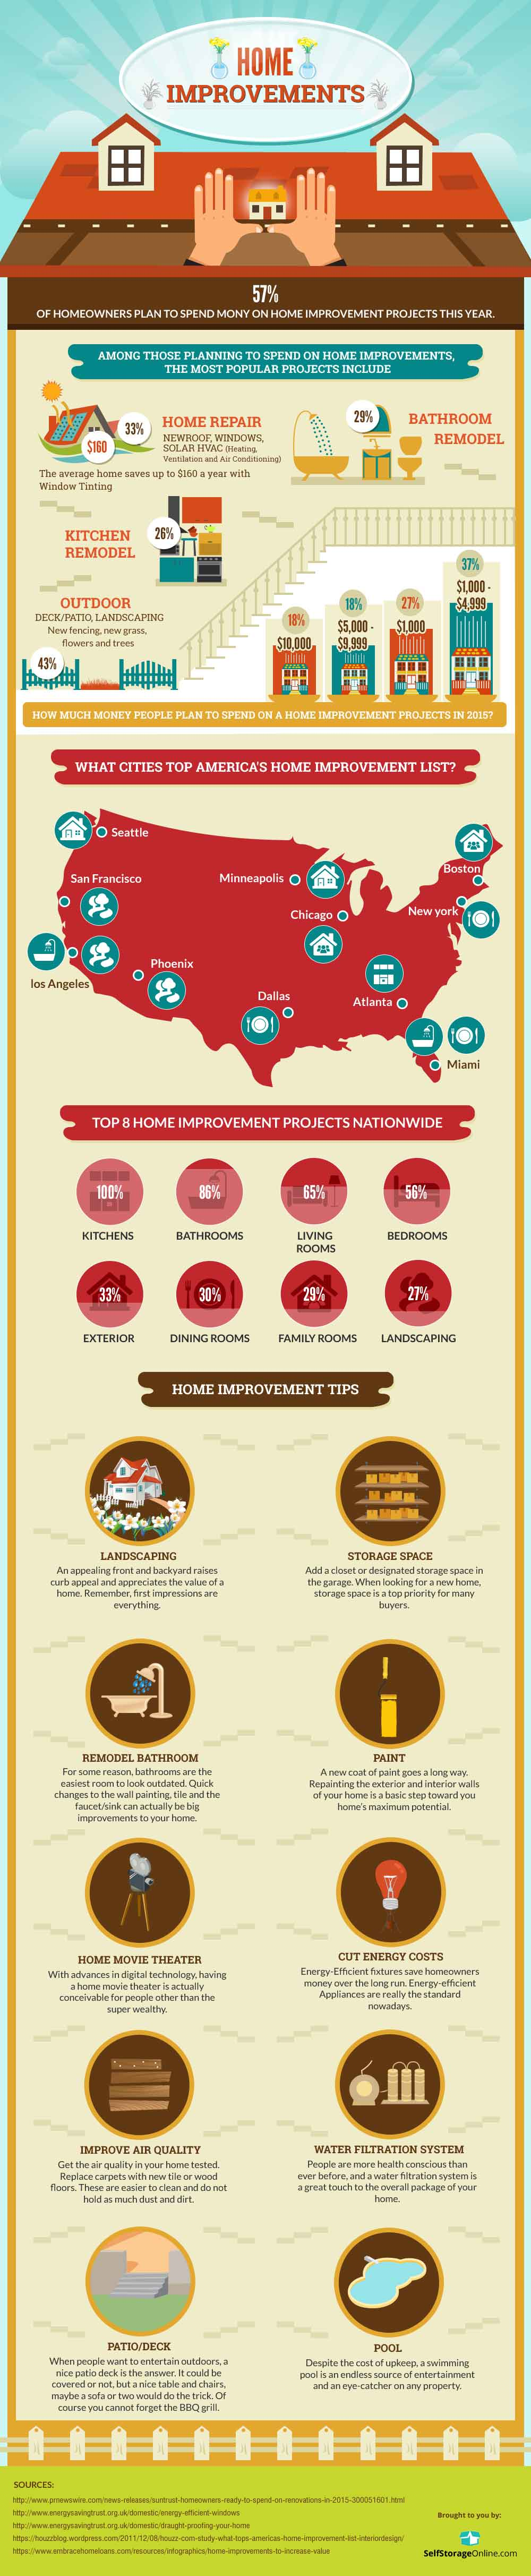 Home Improvements Trends in the US